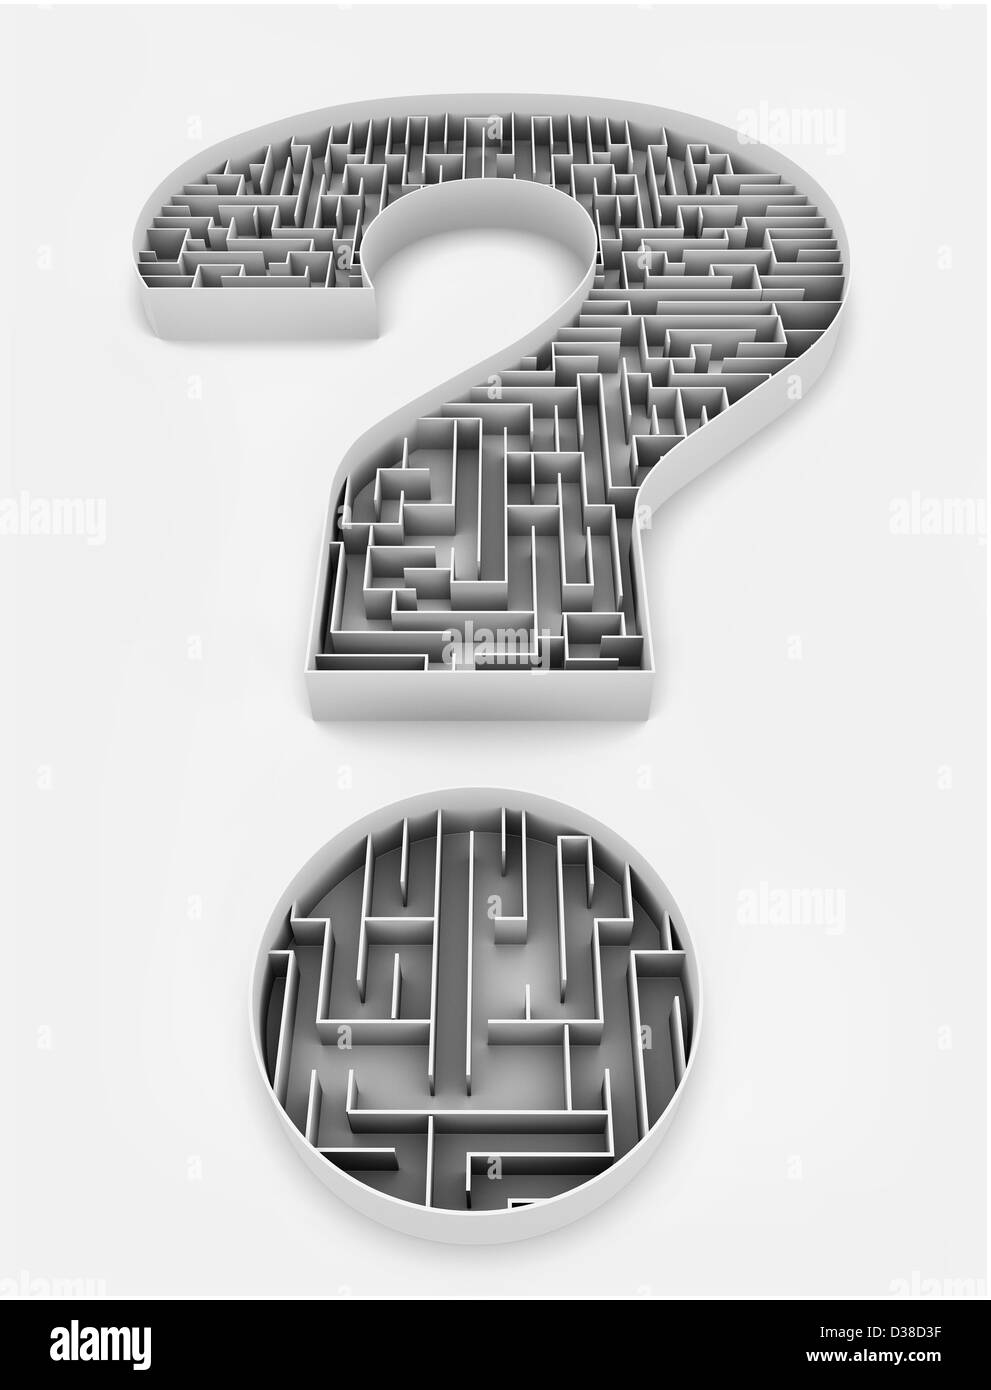 Illustrative image of question mark with maze representing confusion over white background - Stock Image